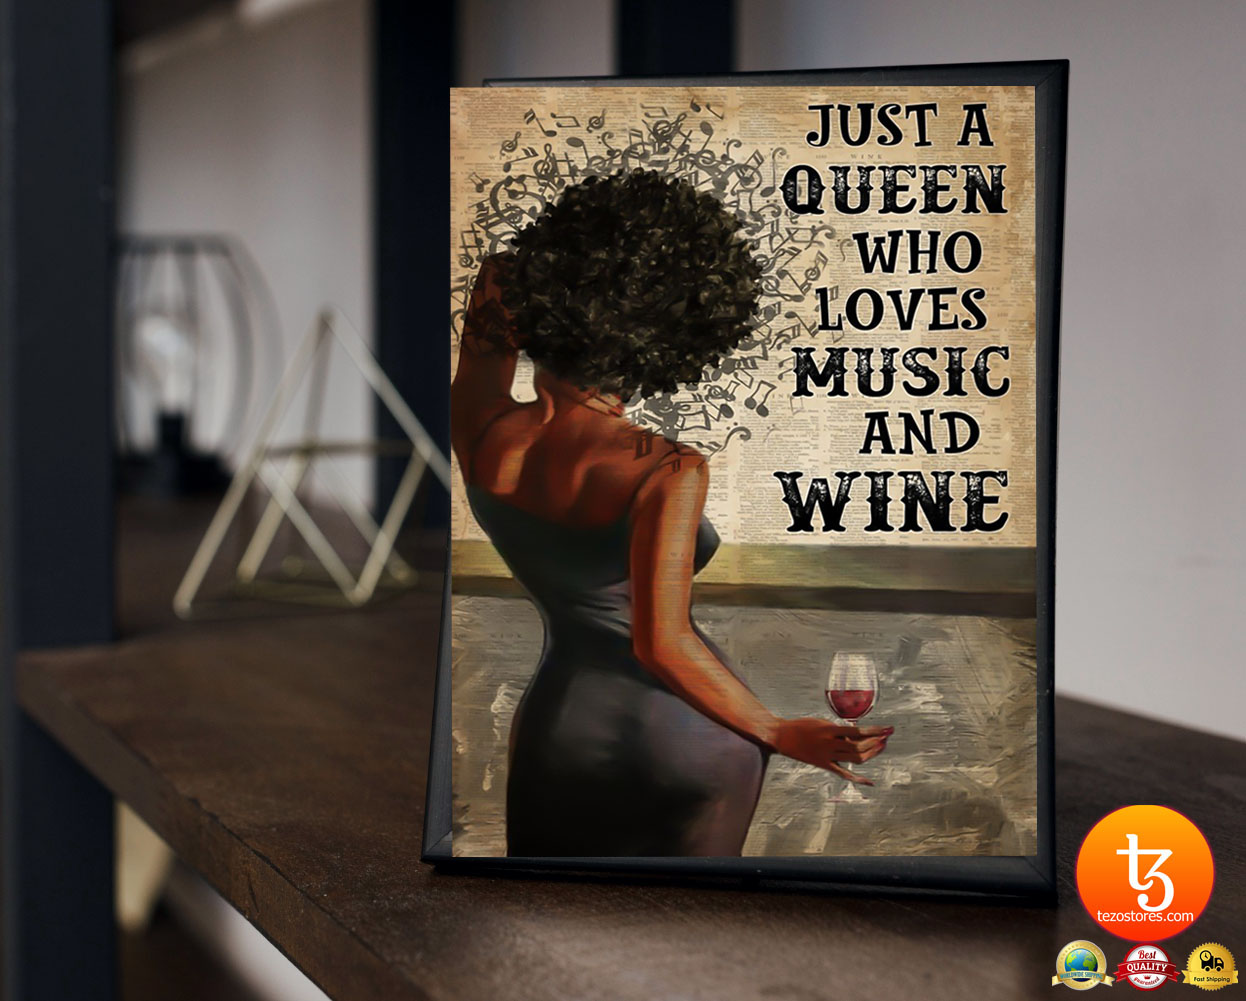 Just a queen who loves music and wine poster